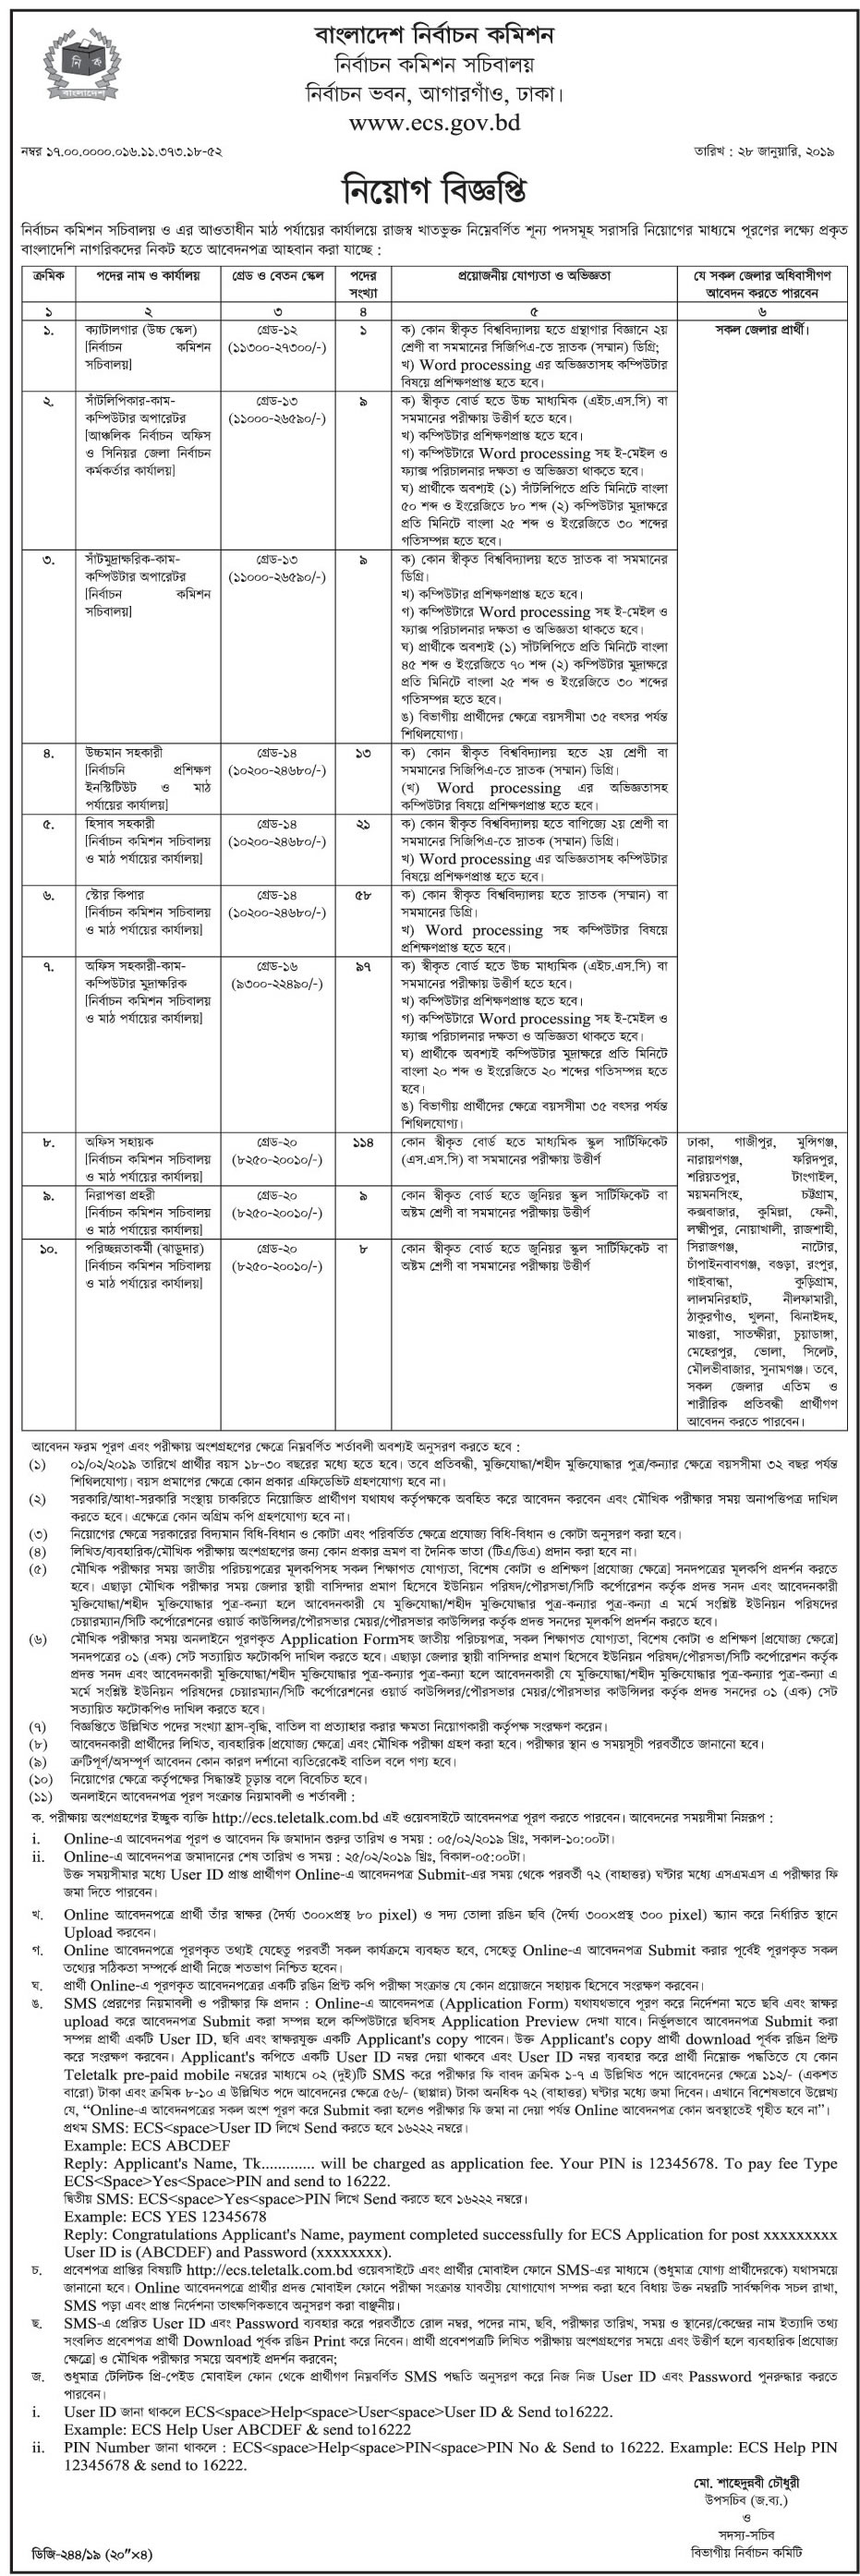 ellection-commission-job-circular-feb-2019 Application Letter For Job As Store Keeper on draft cover, fax cover, writing simple, human resource, best cv, heartfelt cover, hr cover, formal cover, short sample cover, hotel receptionist, english teachers, fresh graduate,